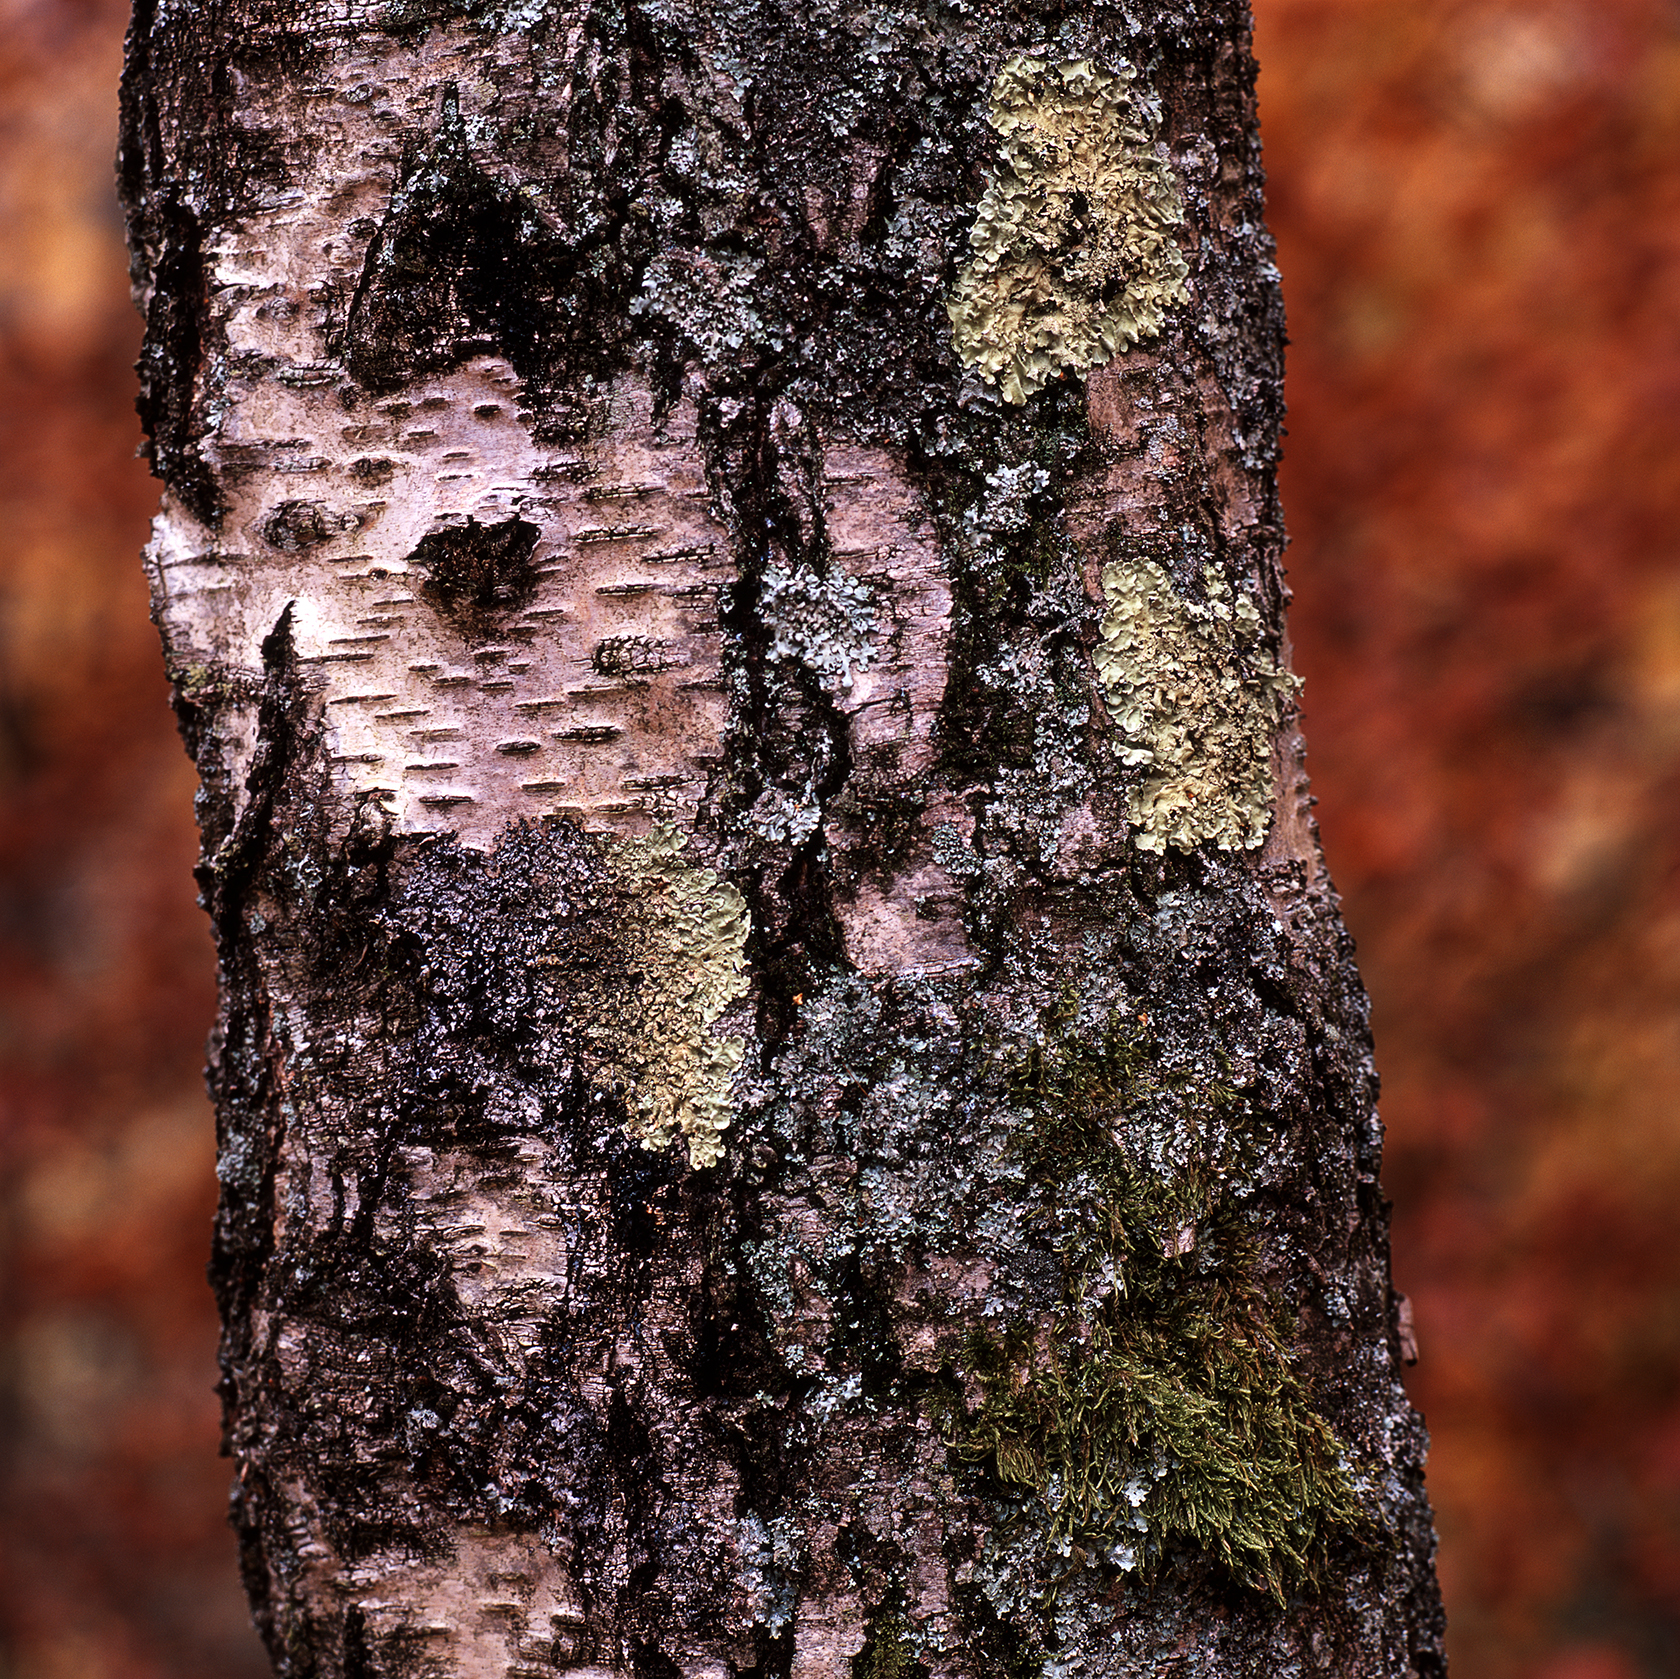 Rule 8 Silver Birch & Lichen